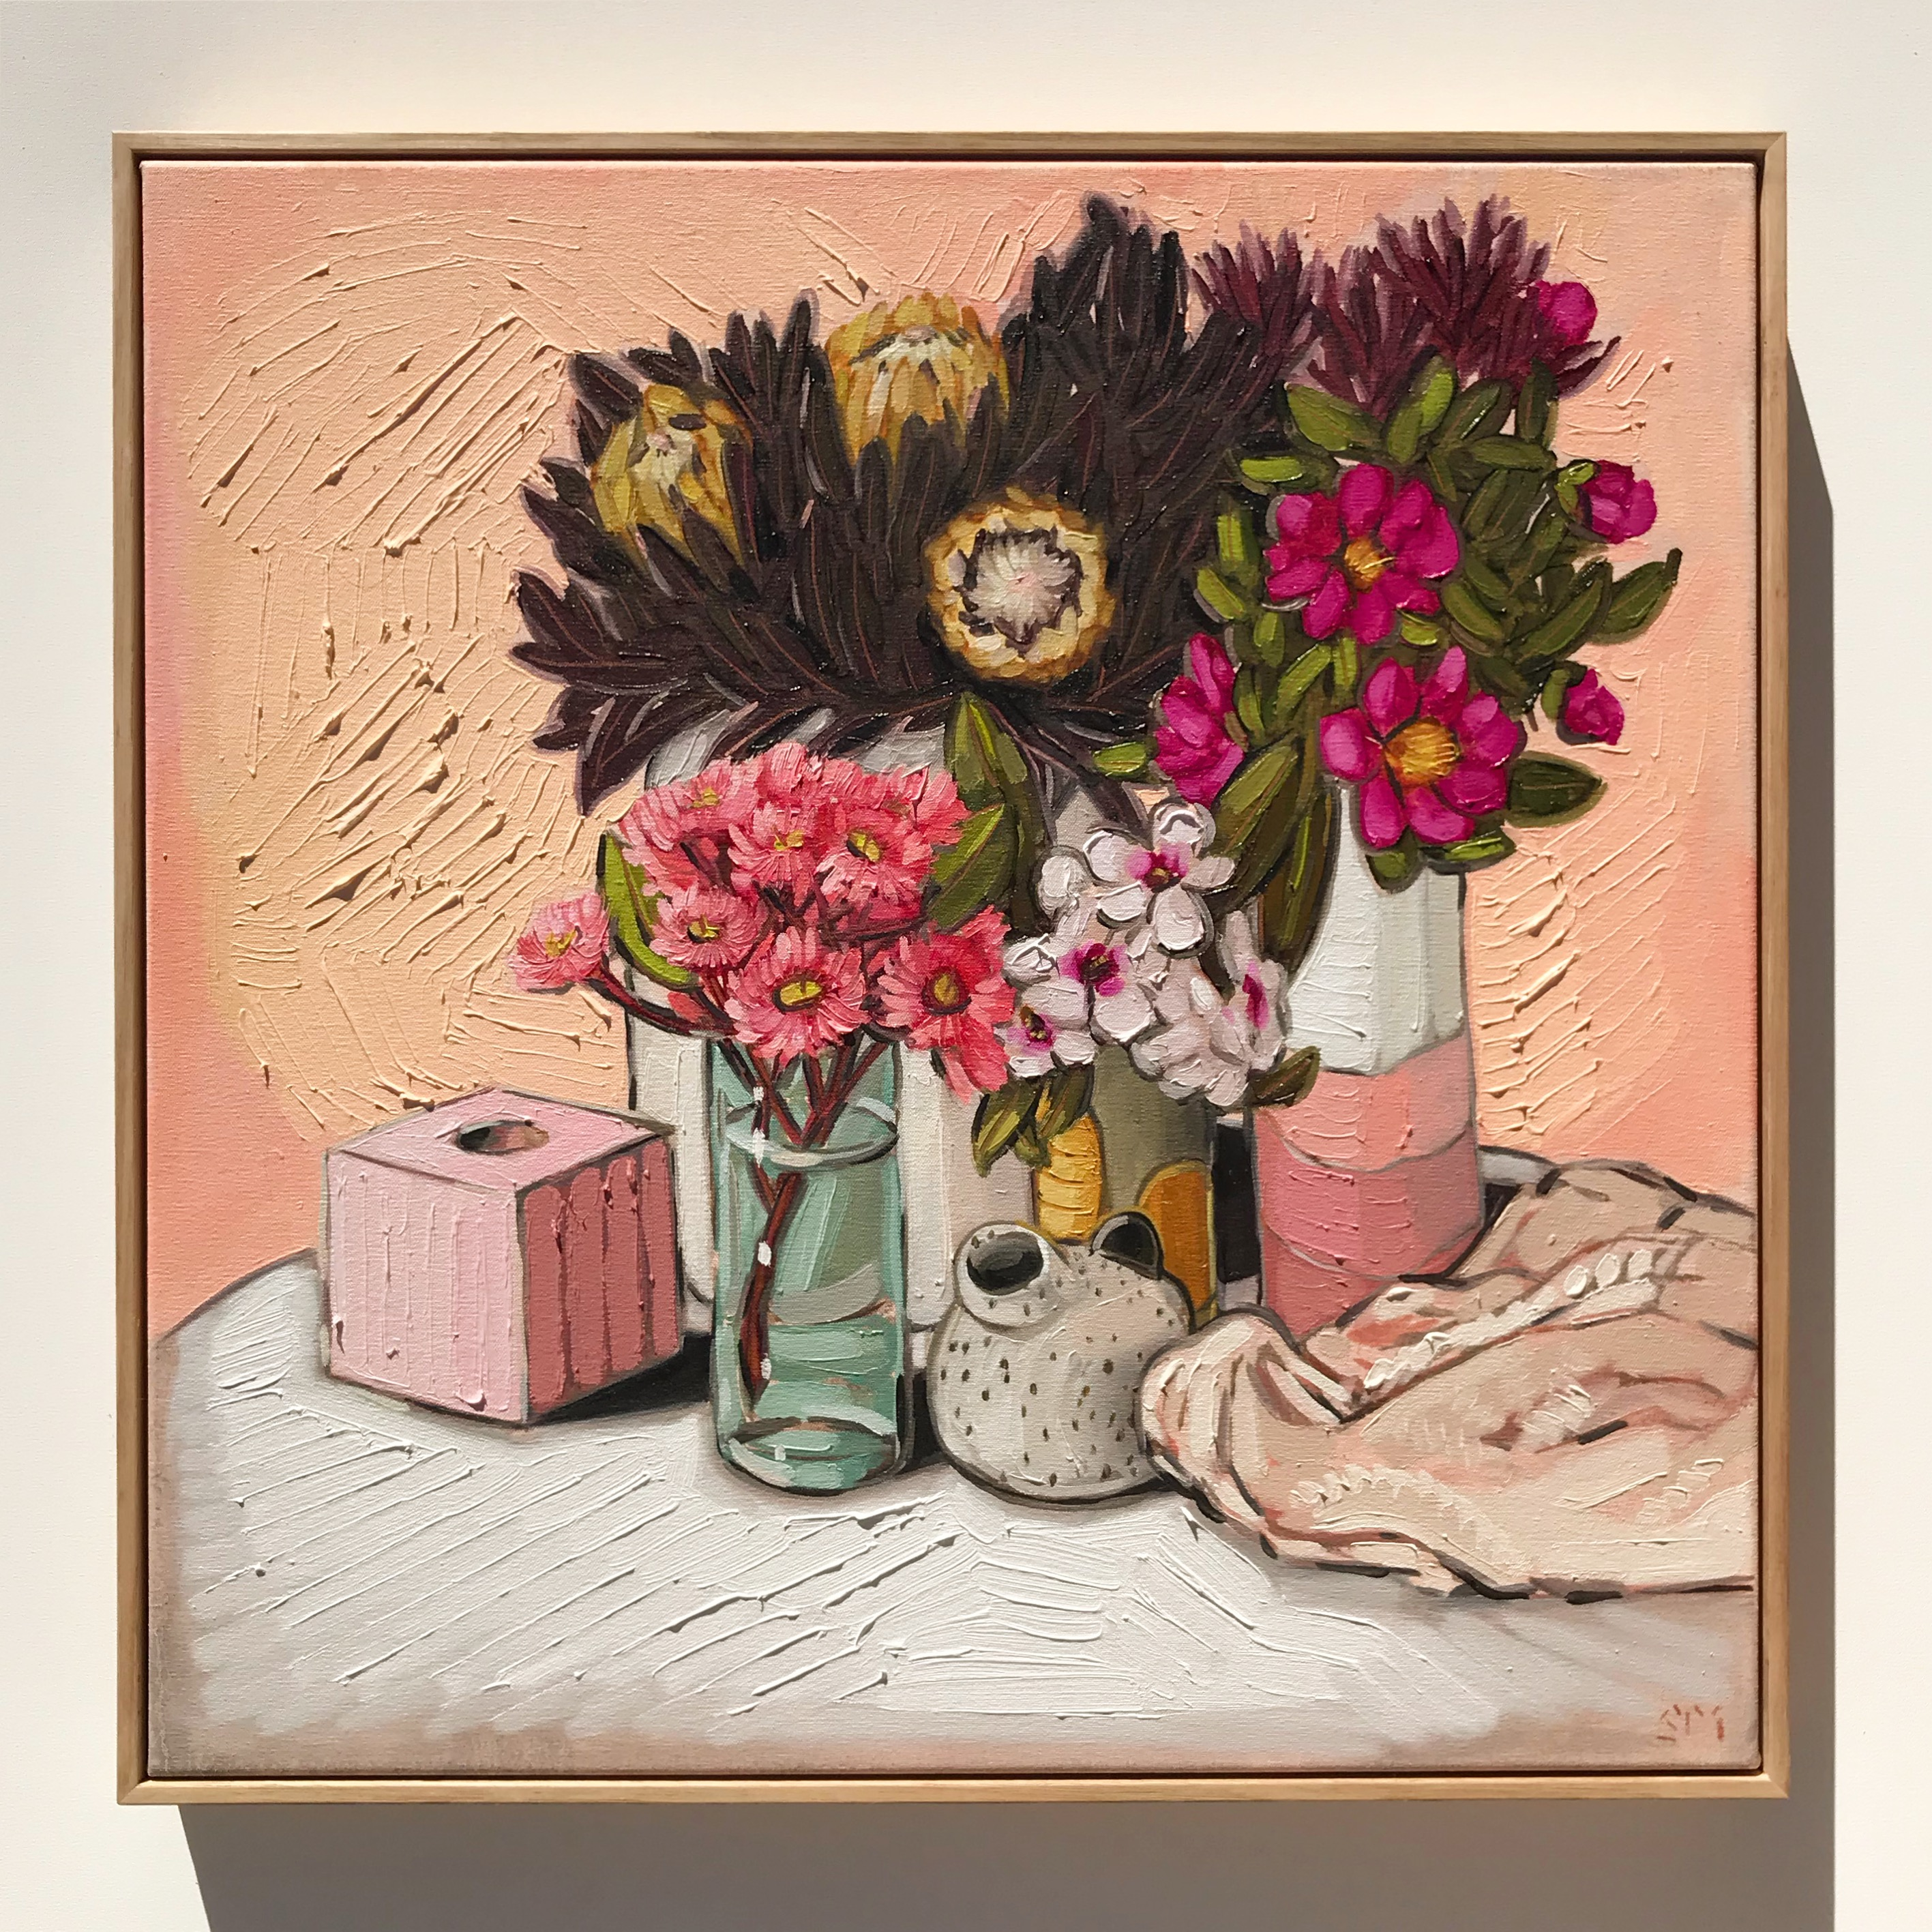 Sam Michelle 'Protea, Gum Blosson & Camellias' 65x65cm